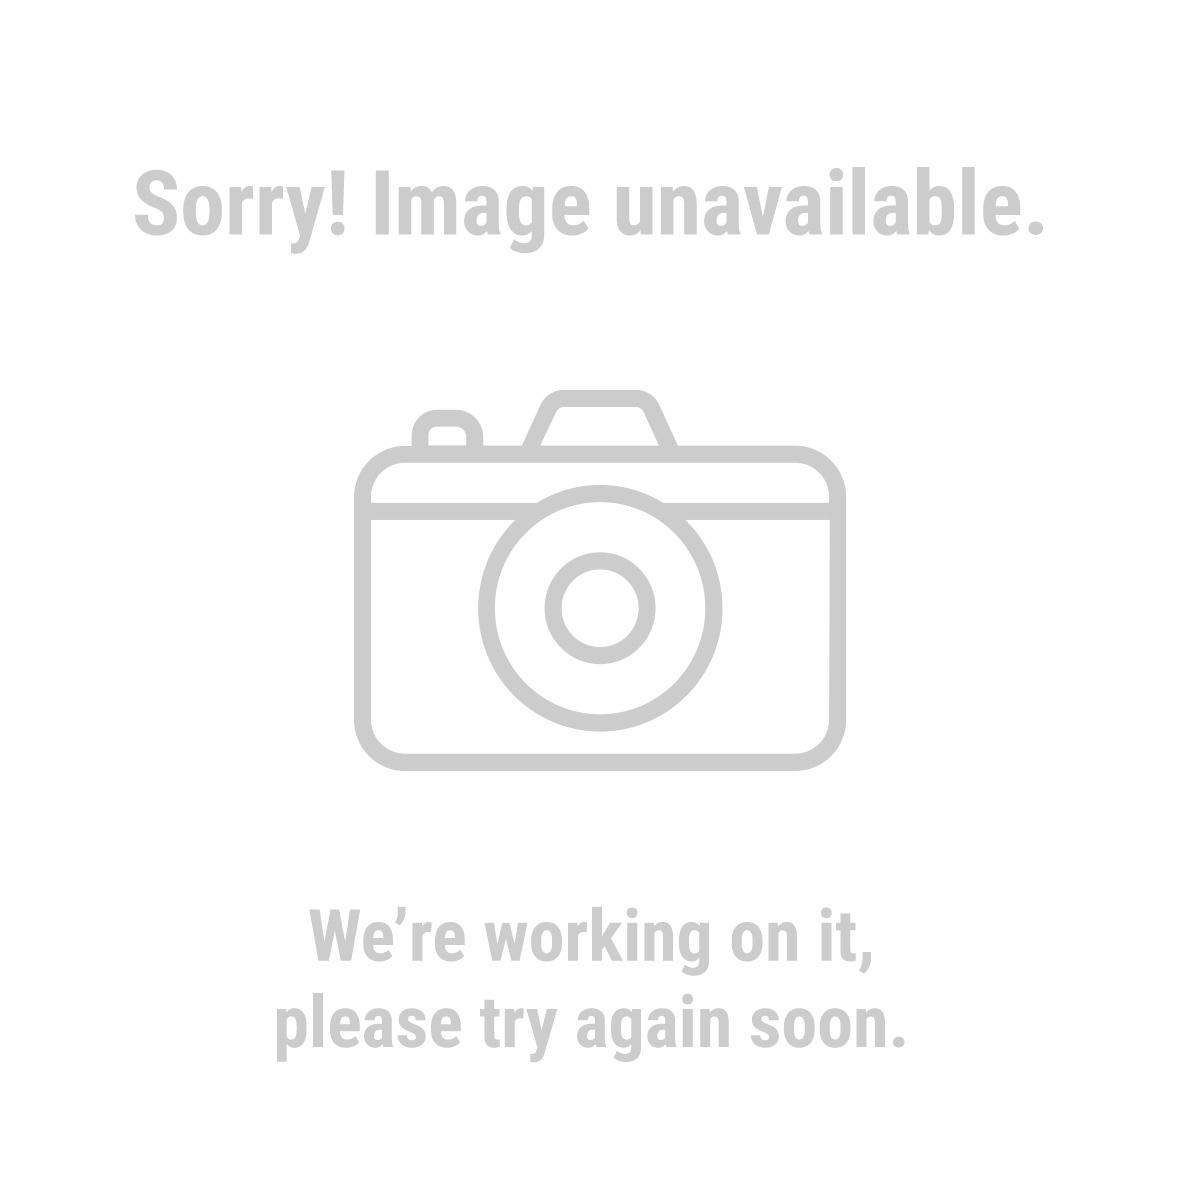 Central Pneumatic 69434 1/5 Horsepower, 58 PSI PSI Airbrush Compressor and Airbrush Kit